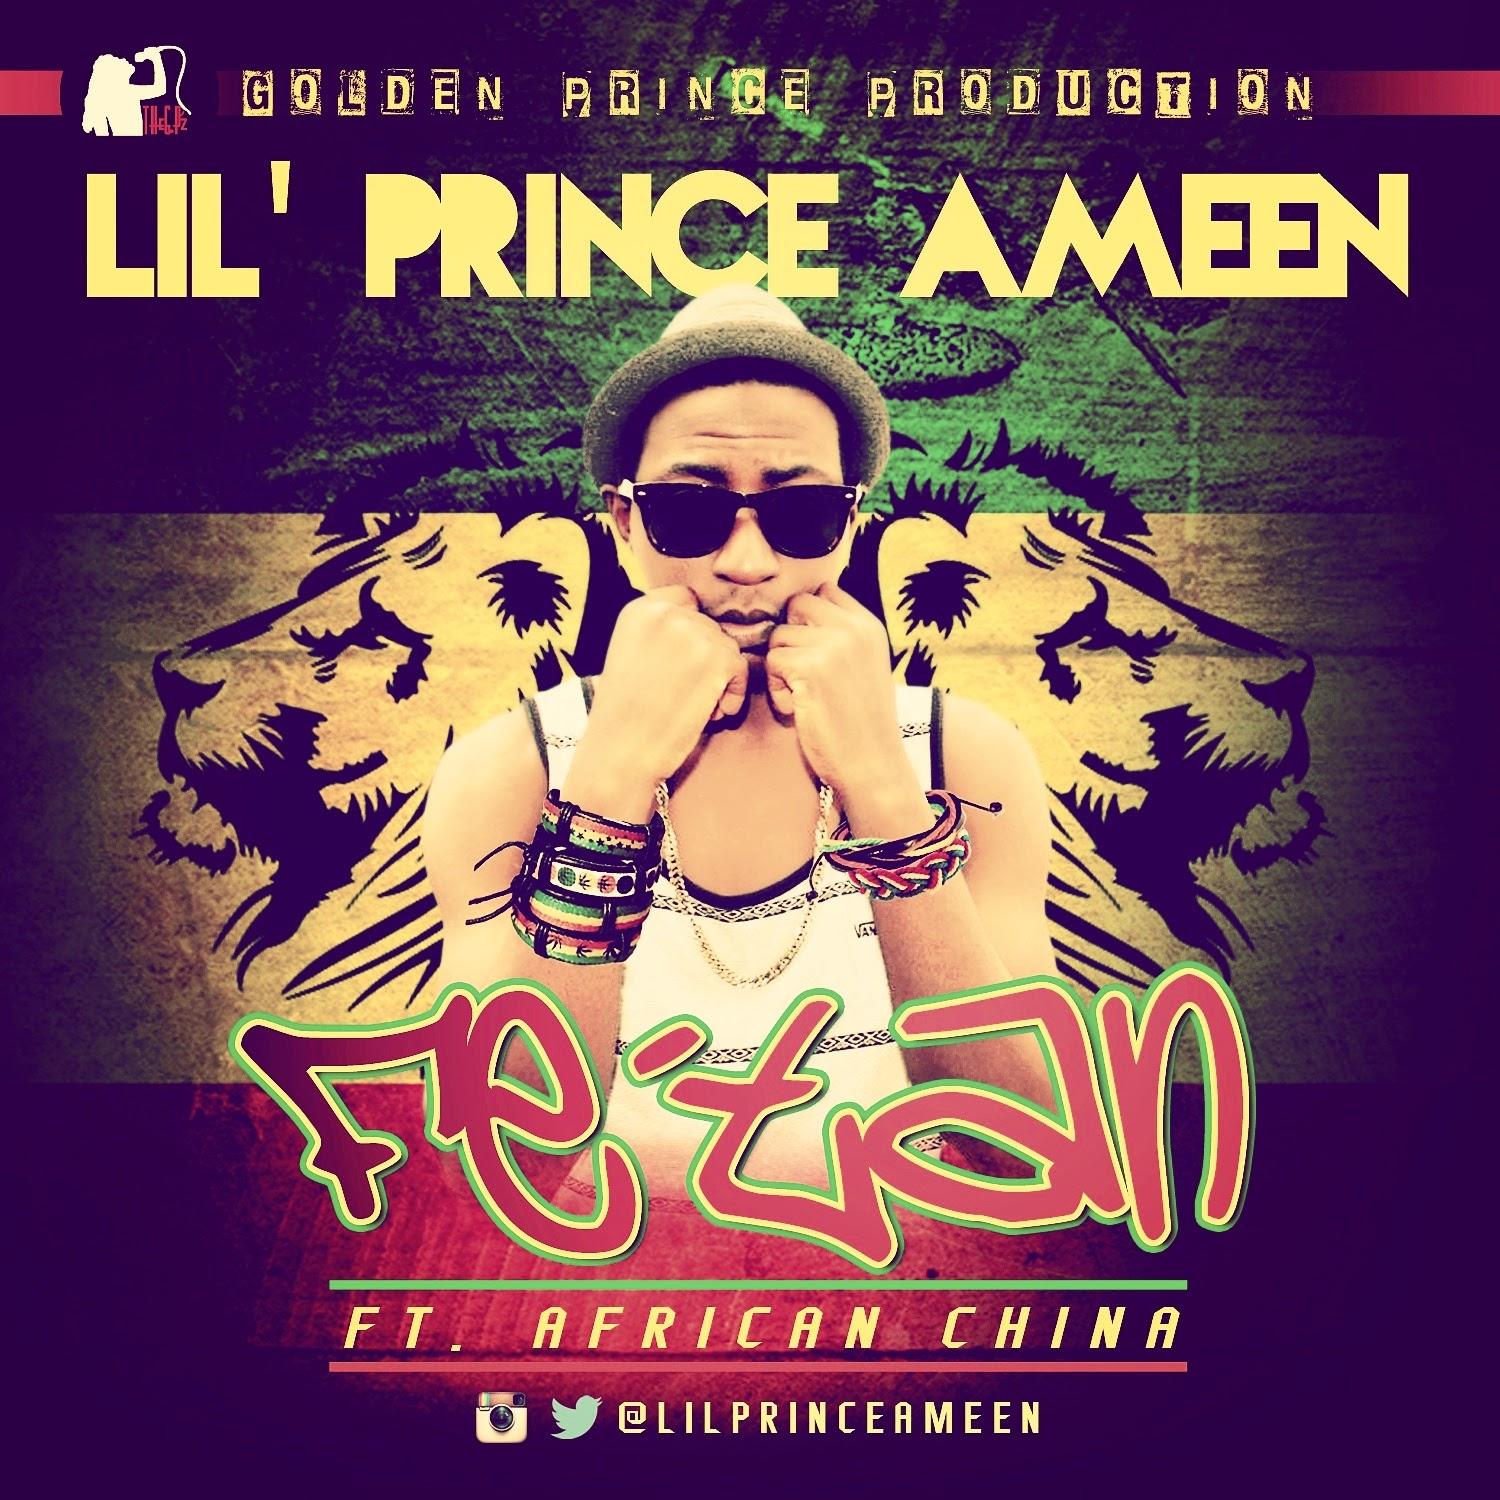 Music: Lil' Prince Ameen - Fe'tan ft African China